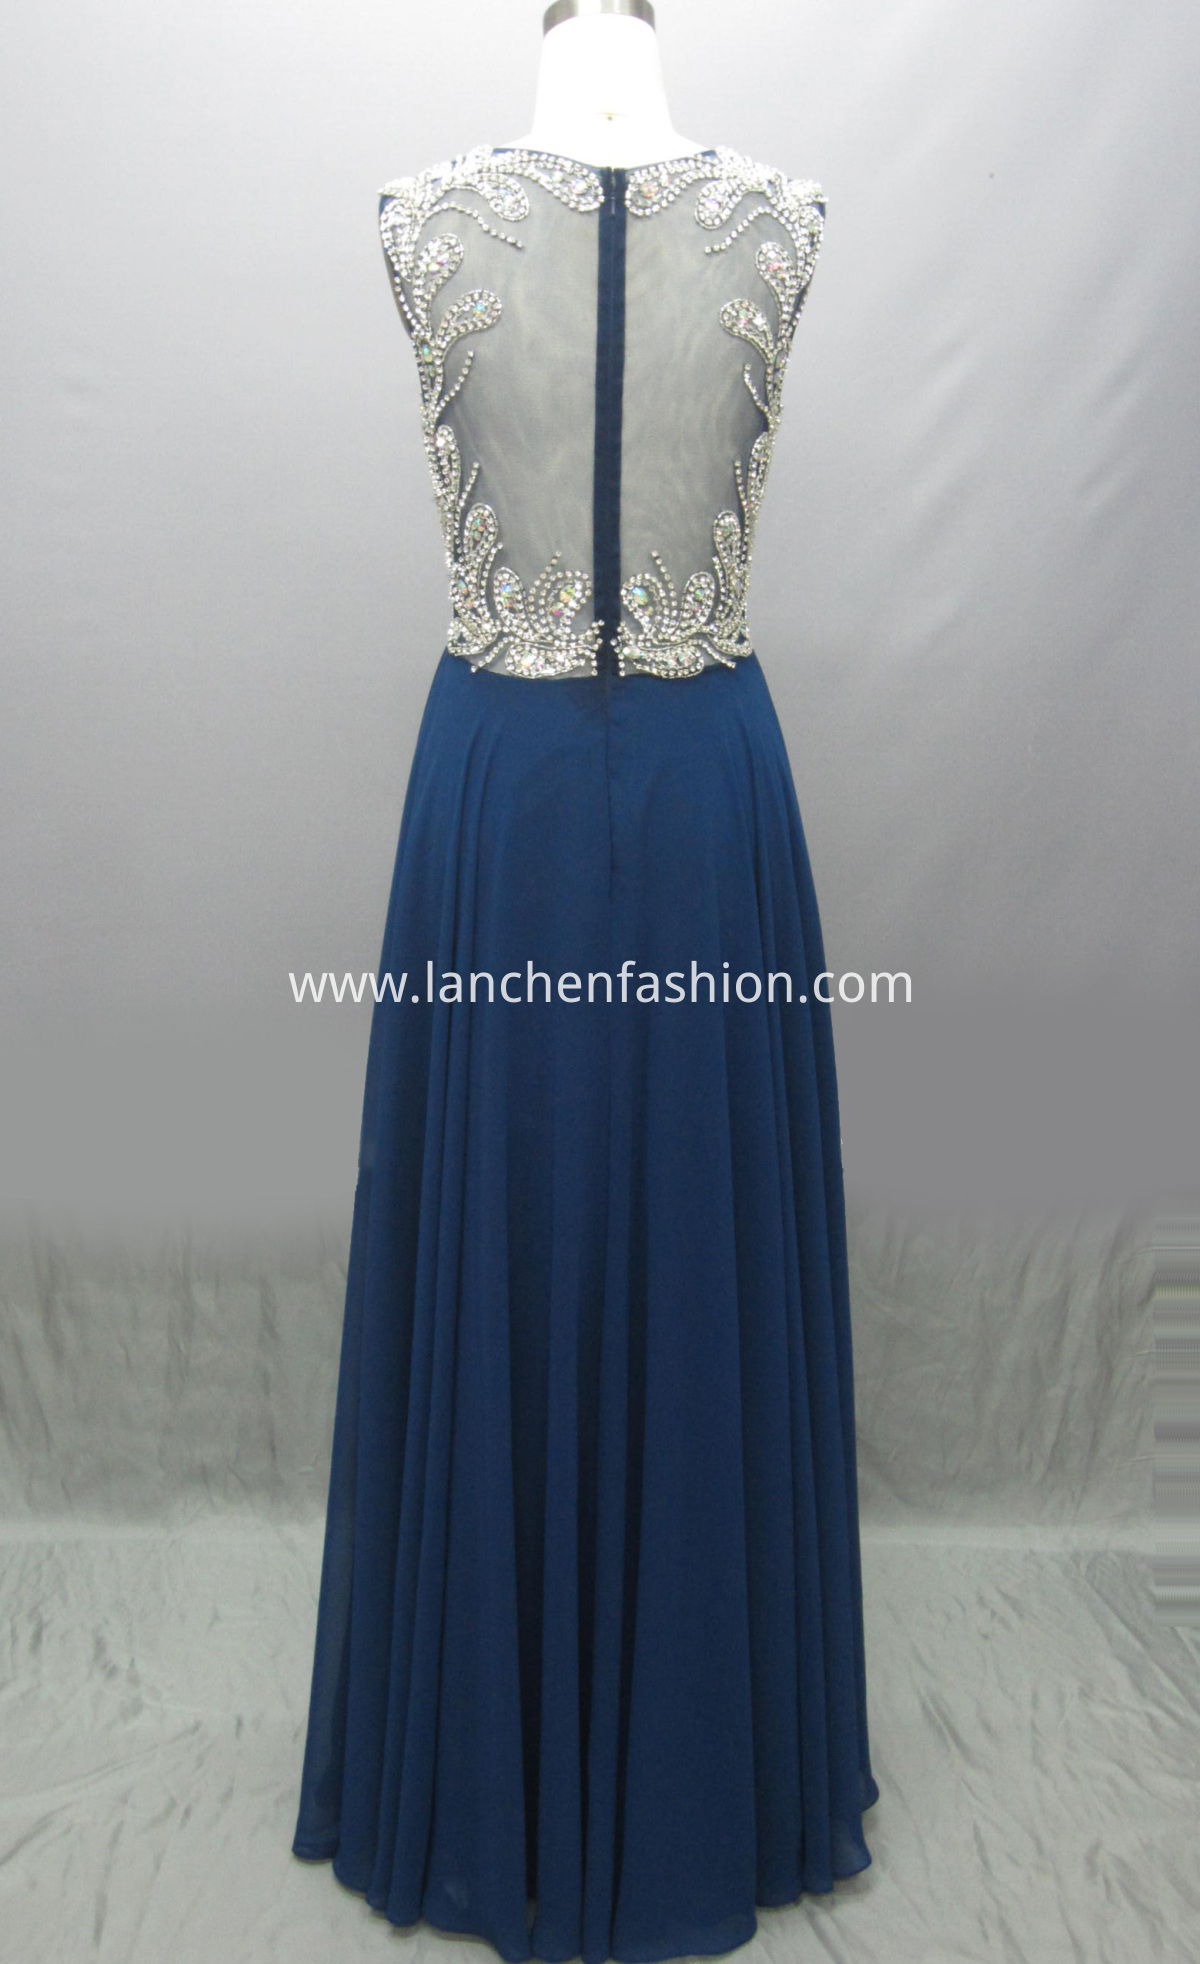 Beaded Chiffon Dress back